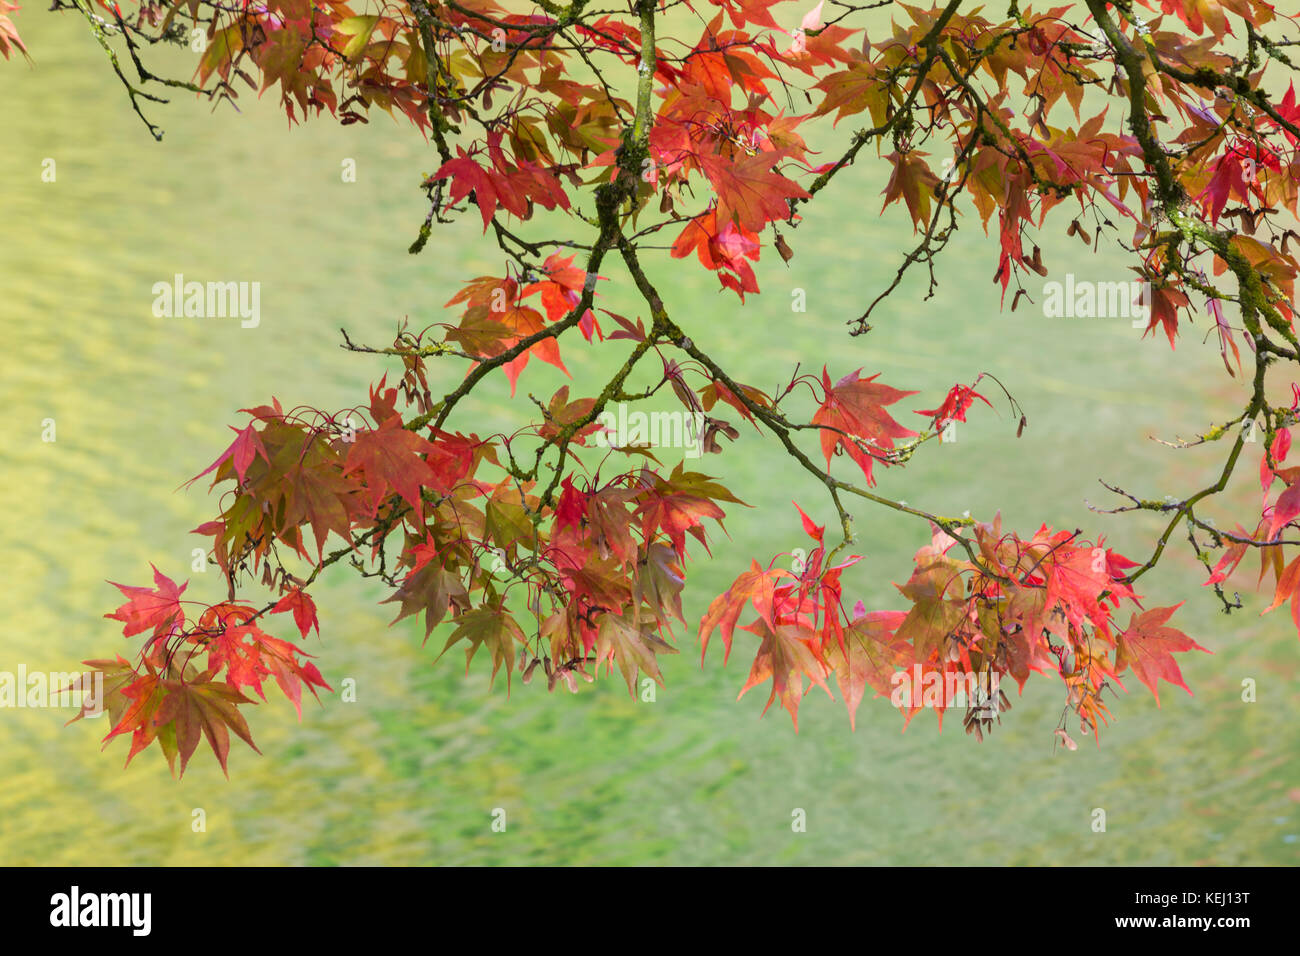 Red Acer maple leaves contrasting against blue green water - Stock Image